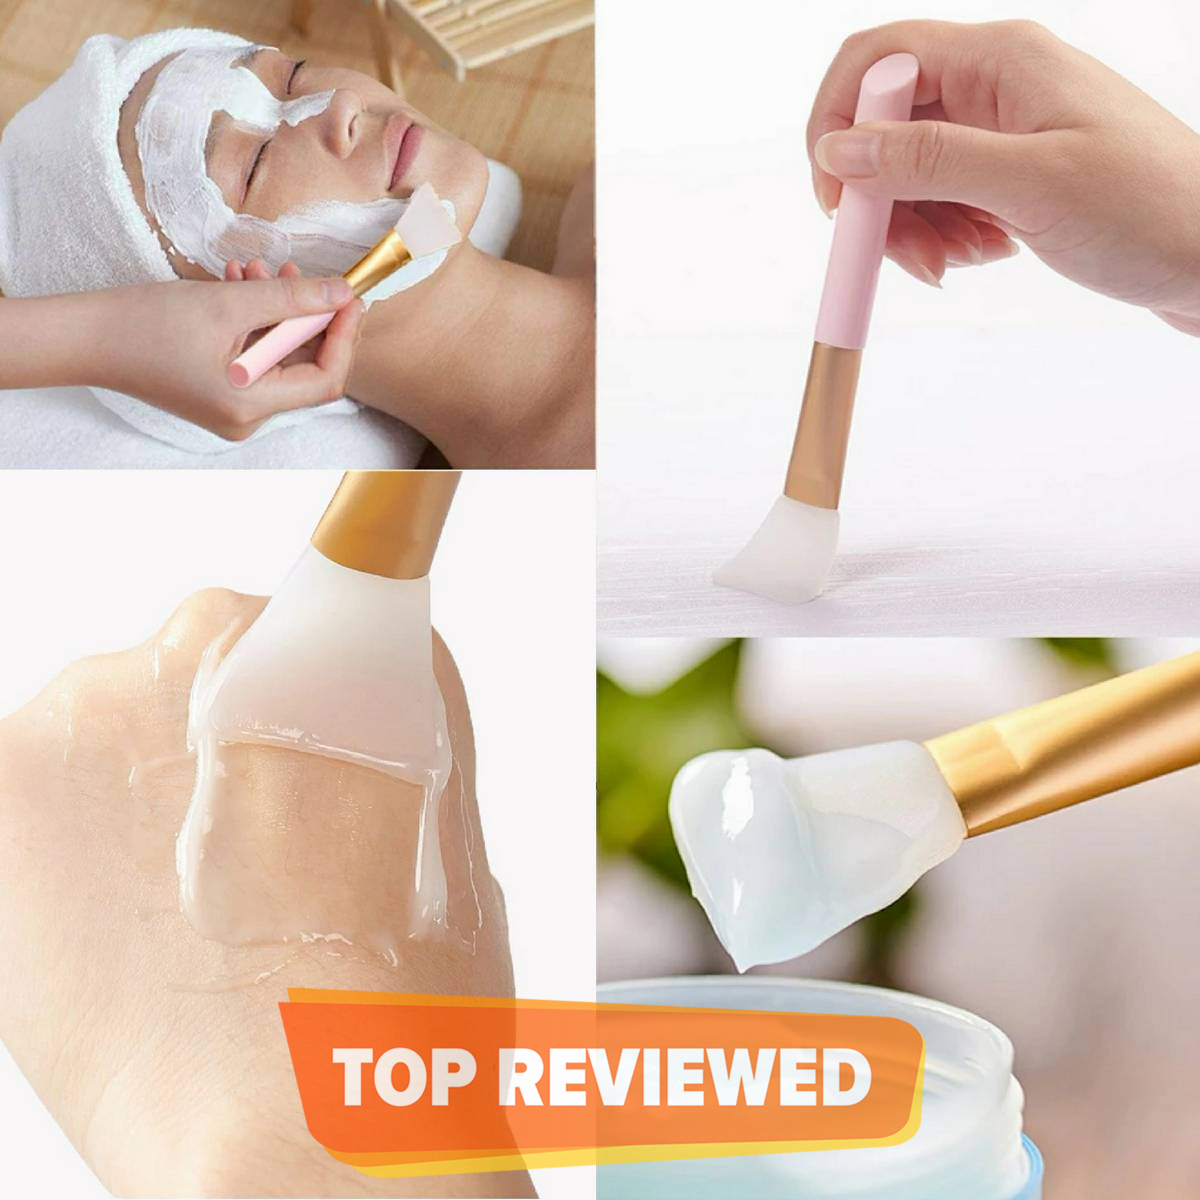 Silicone Brush For Applying Facial Masks